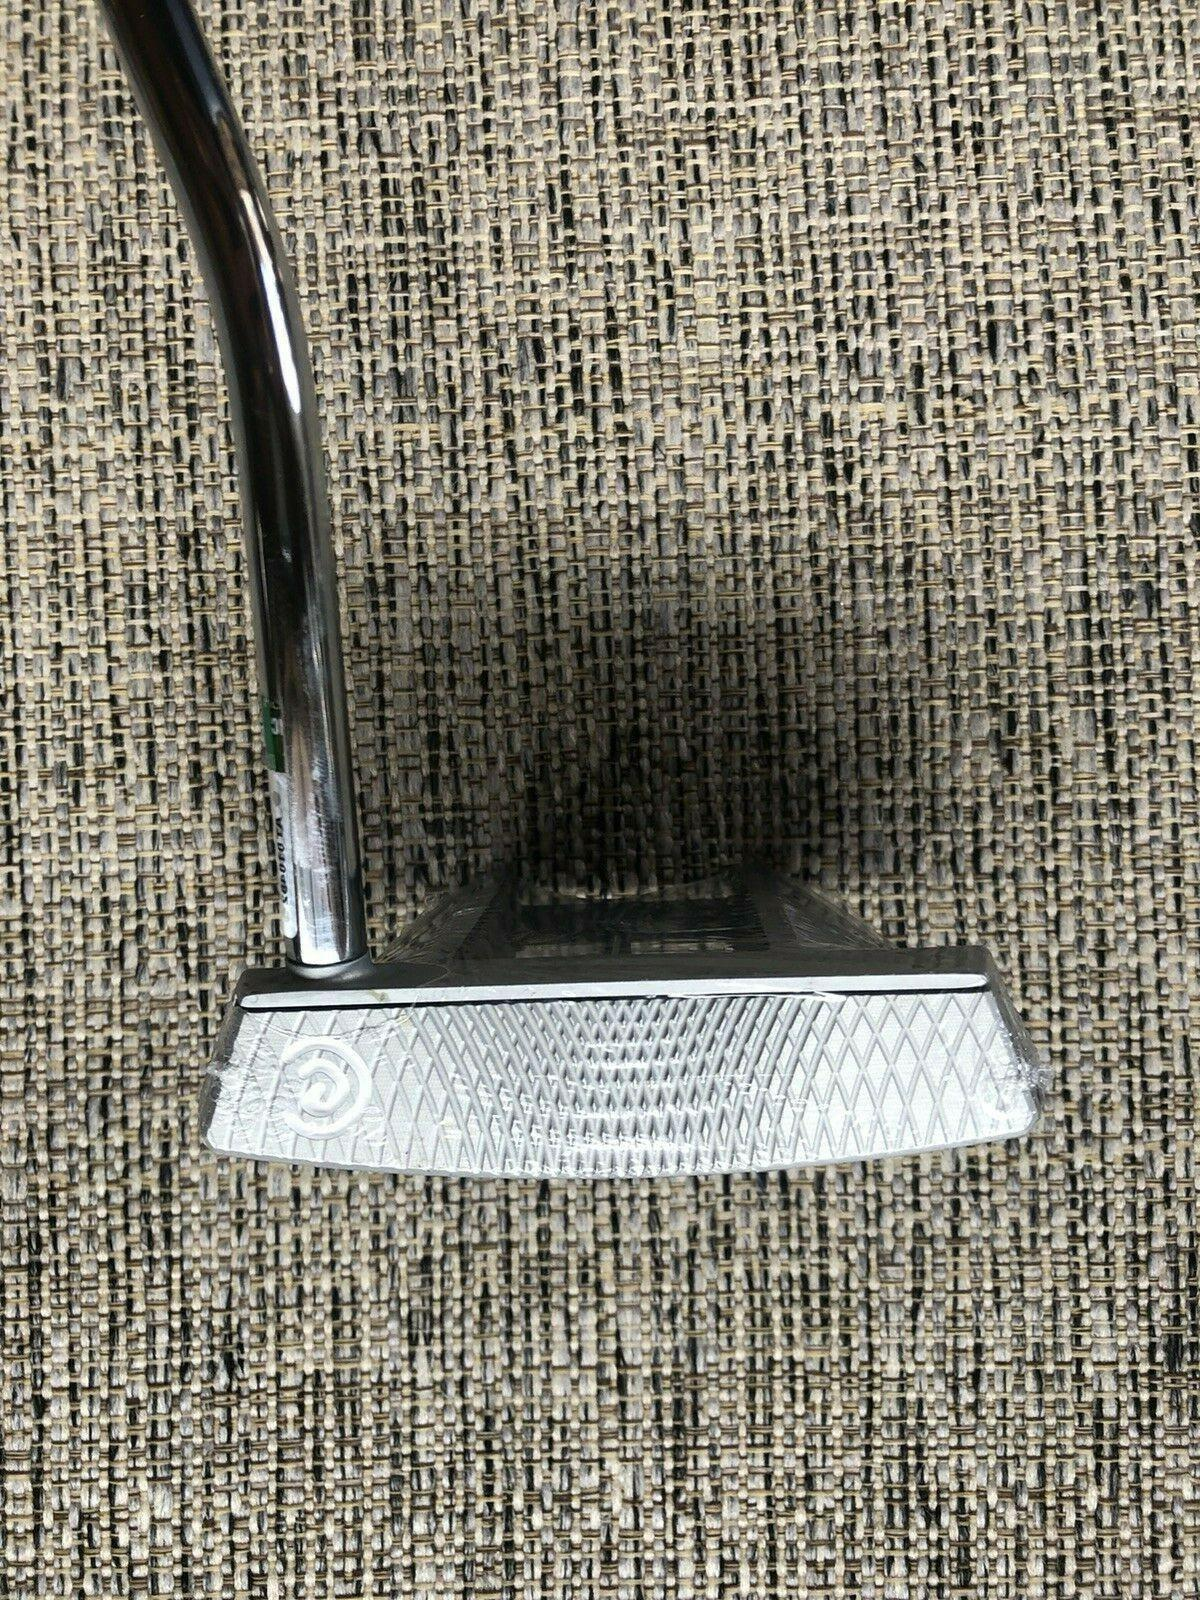 BRAND NEW! Cleveland 2135 Right Putter